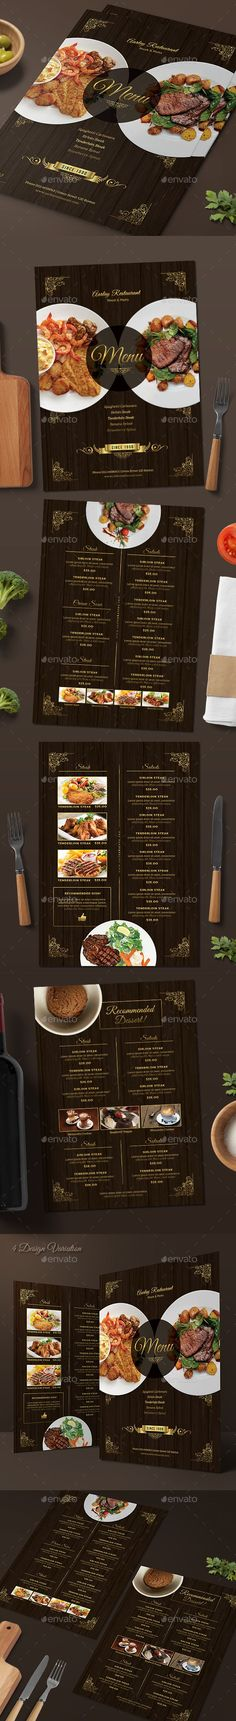 Elegant Restaurant Menu  #photoshop #psd #food menu #menu • Download ➝ https://graphicriver.net/item/elegant-restaurant-menu/18590107?ref=pxcr